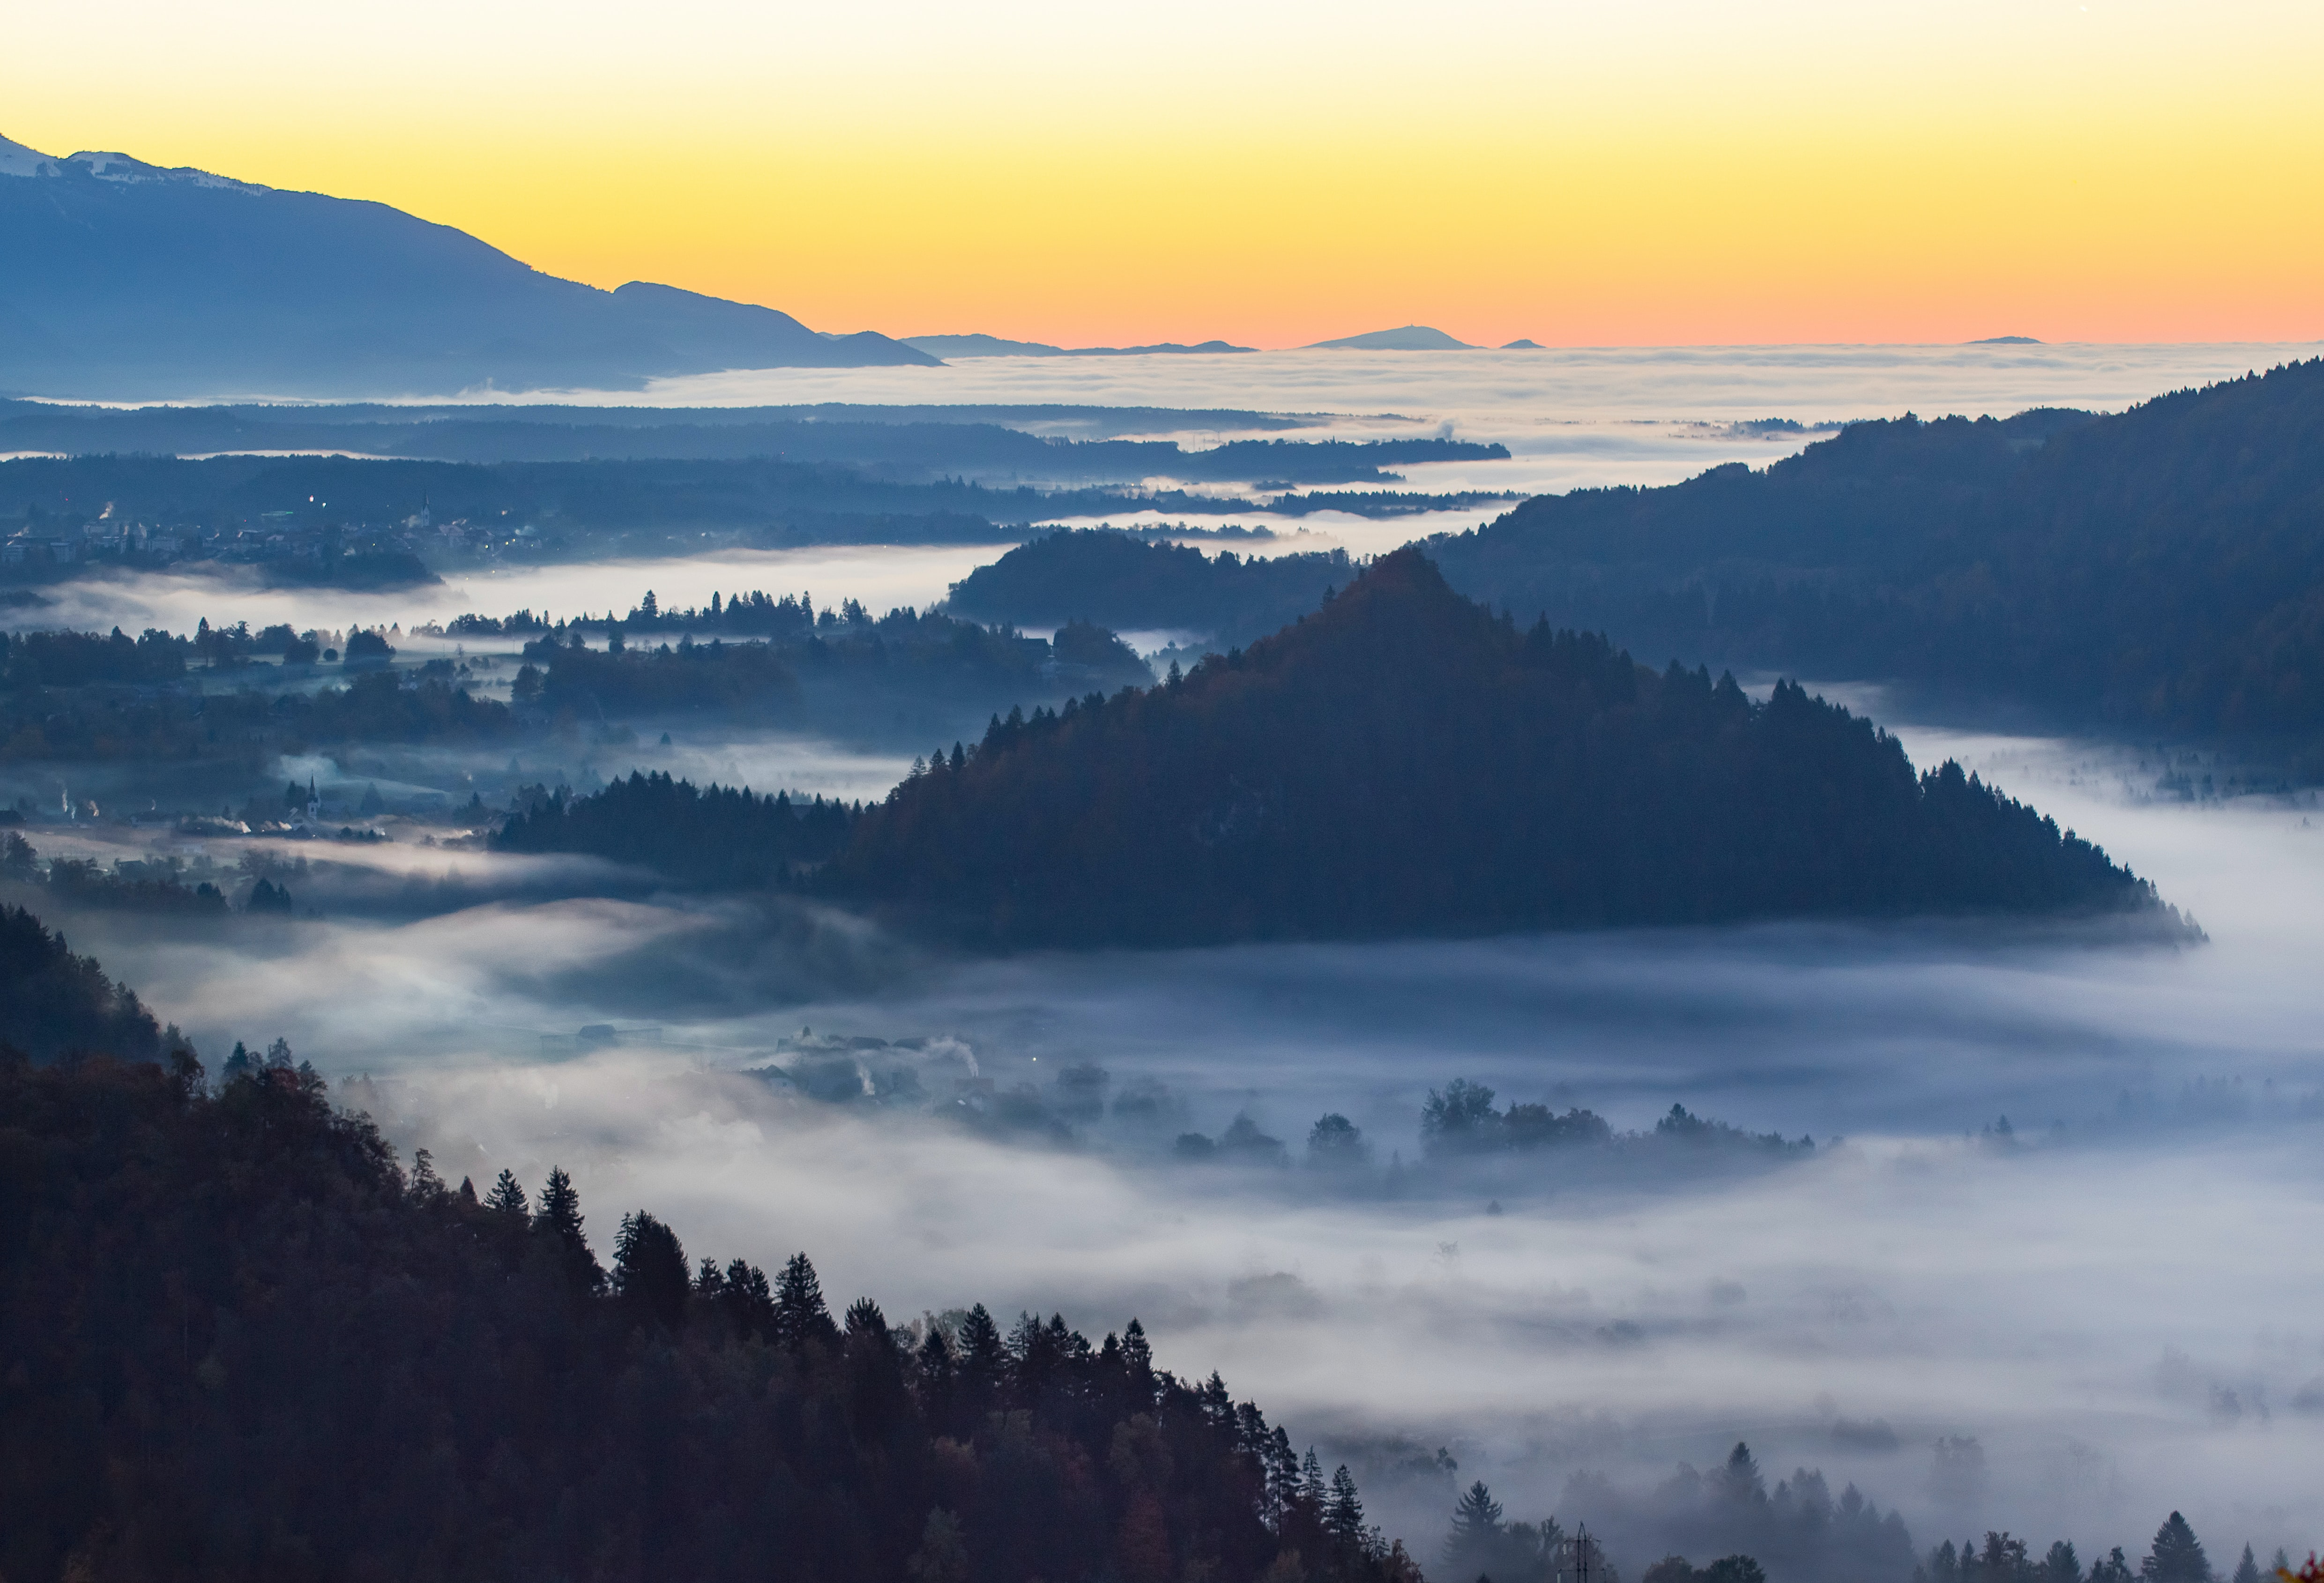 Mist over a town in a mountain valley in Bled during sunset